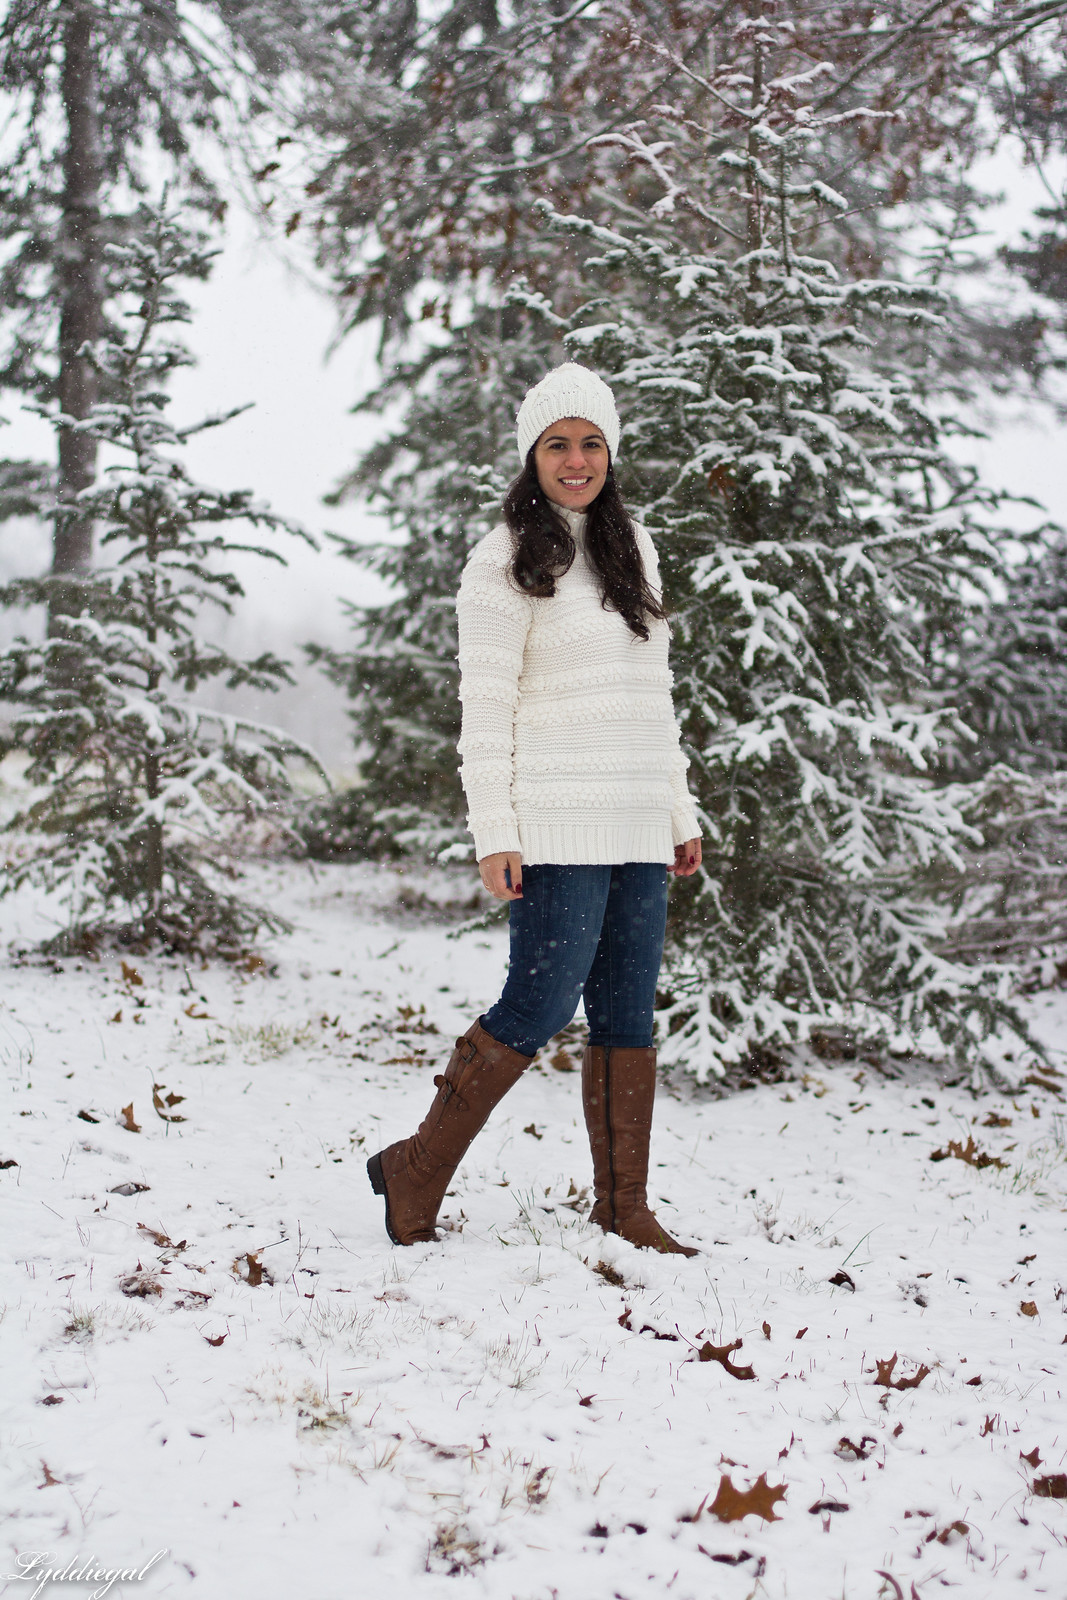 CT Fashion blogger wearing a loft white sweater, brown leather boots, pom pom hat, tree hunt outfit-14.jpg